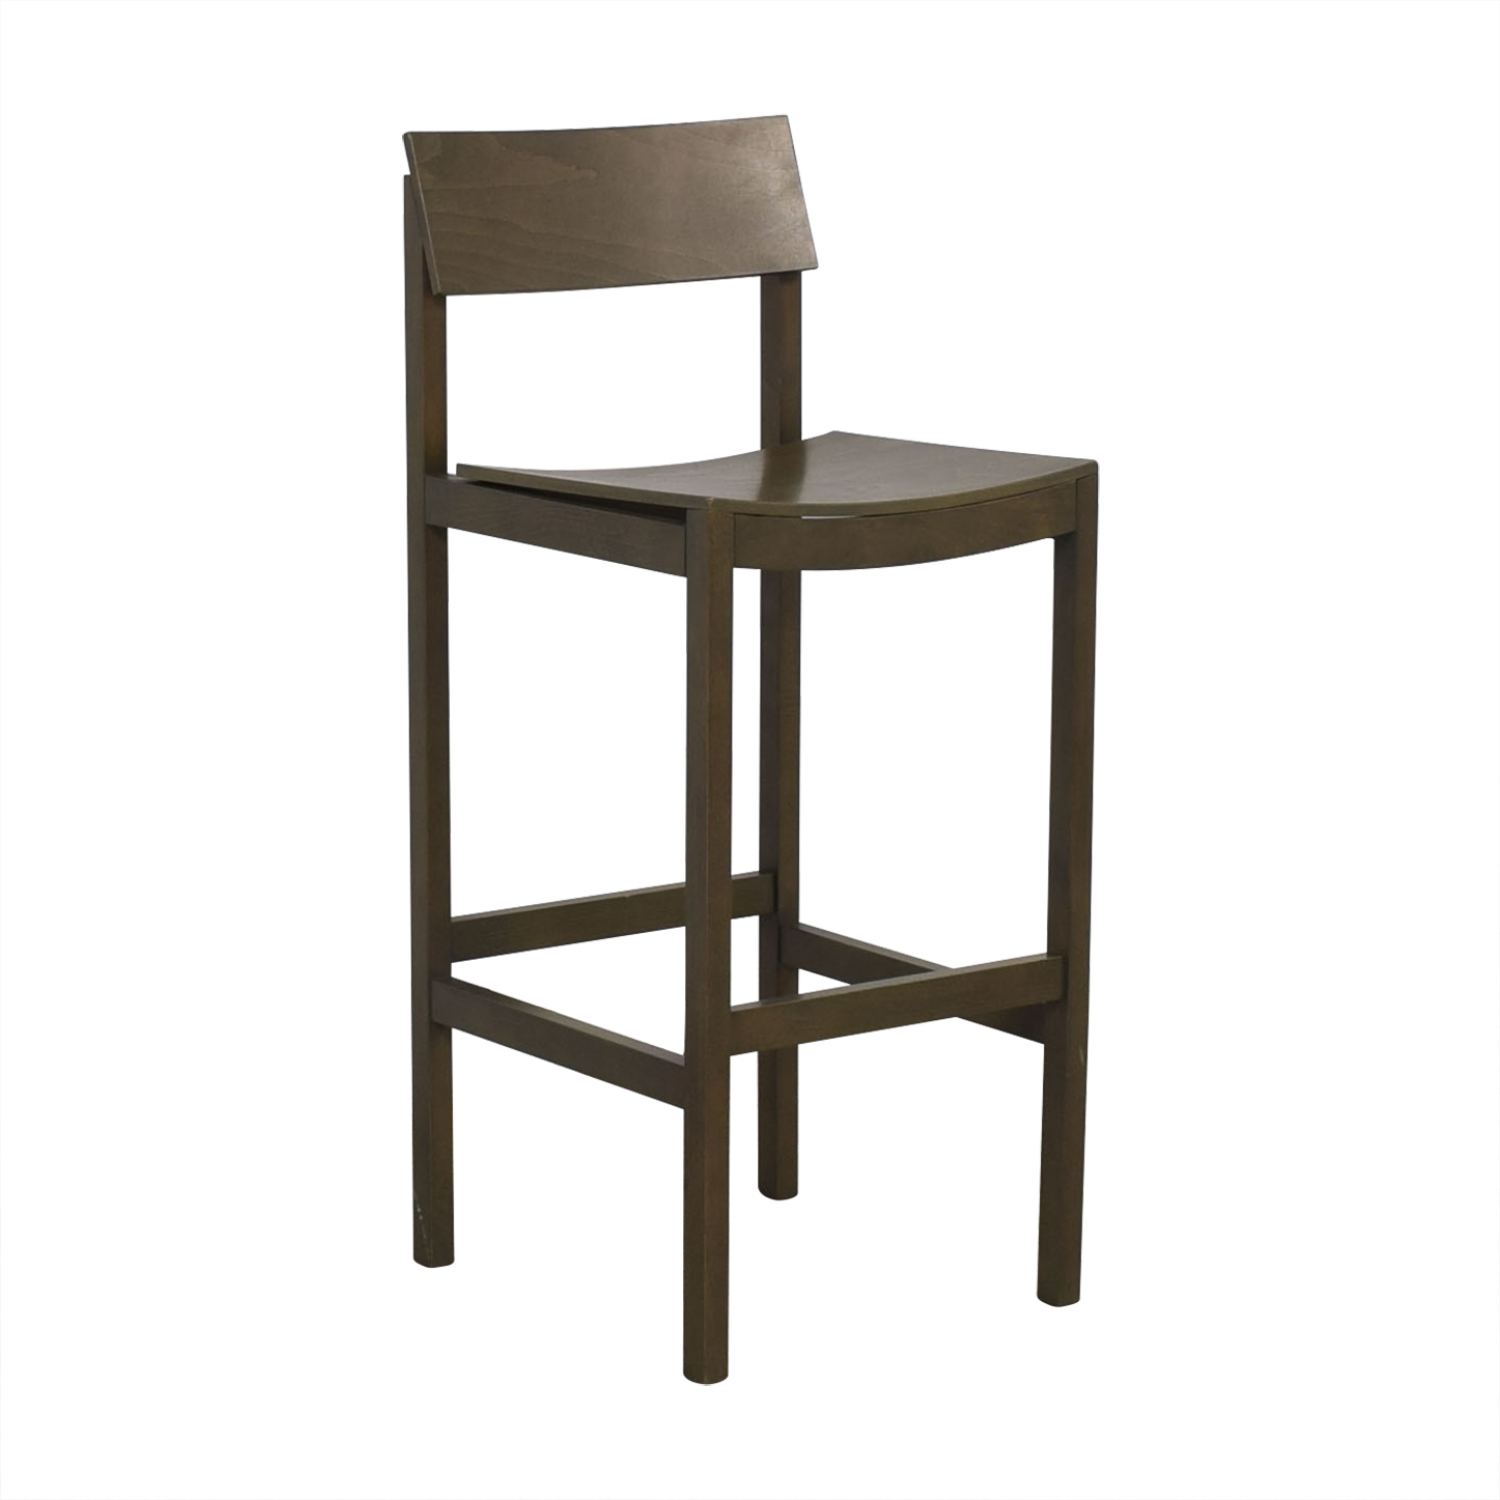 Cool 66 Off Cb2 Cb2 Counter Stool Chairs Pabps2019 Chair Design Images Pabps2019Com